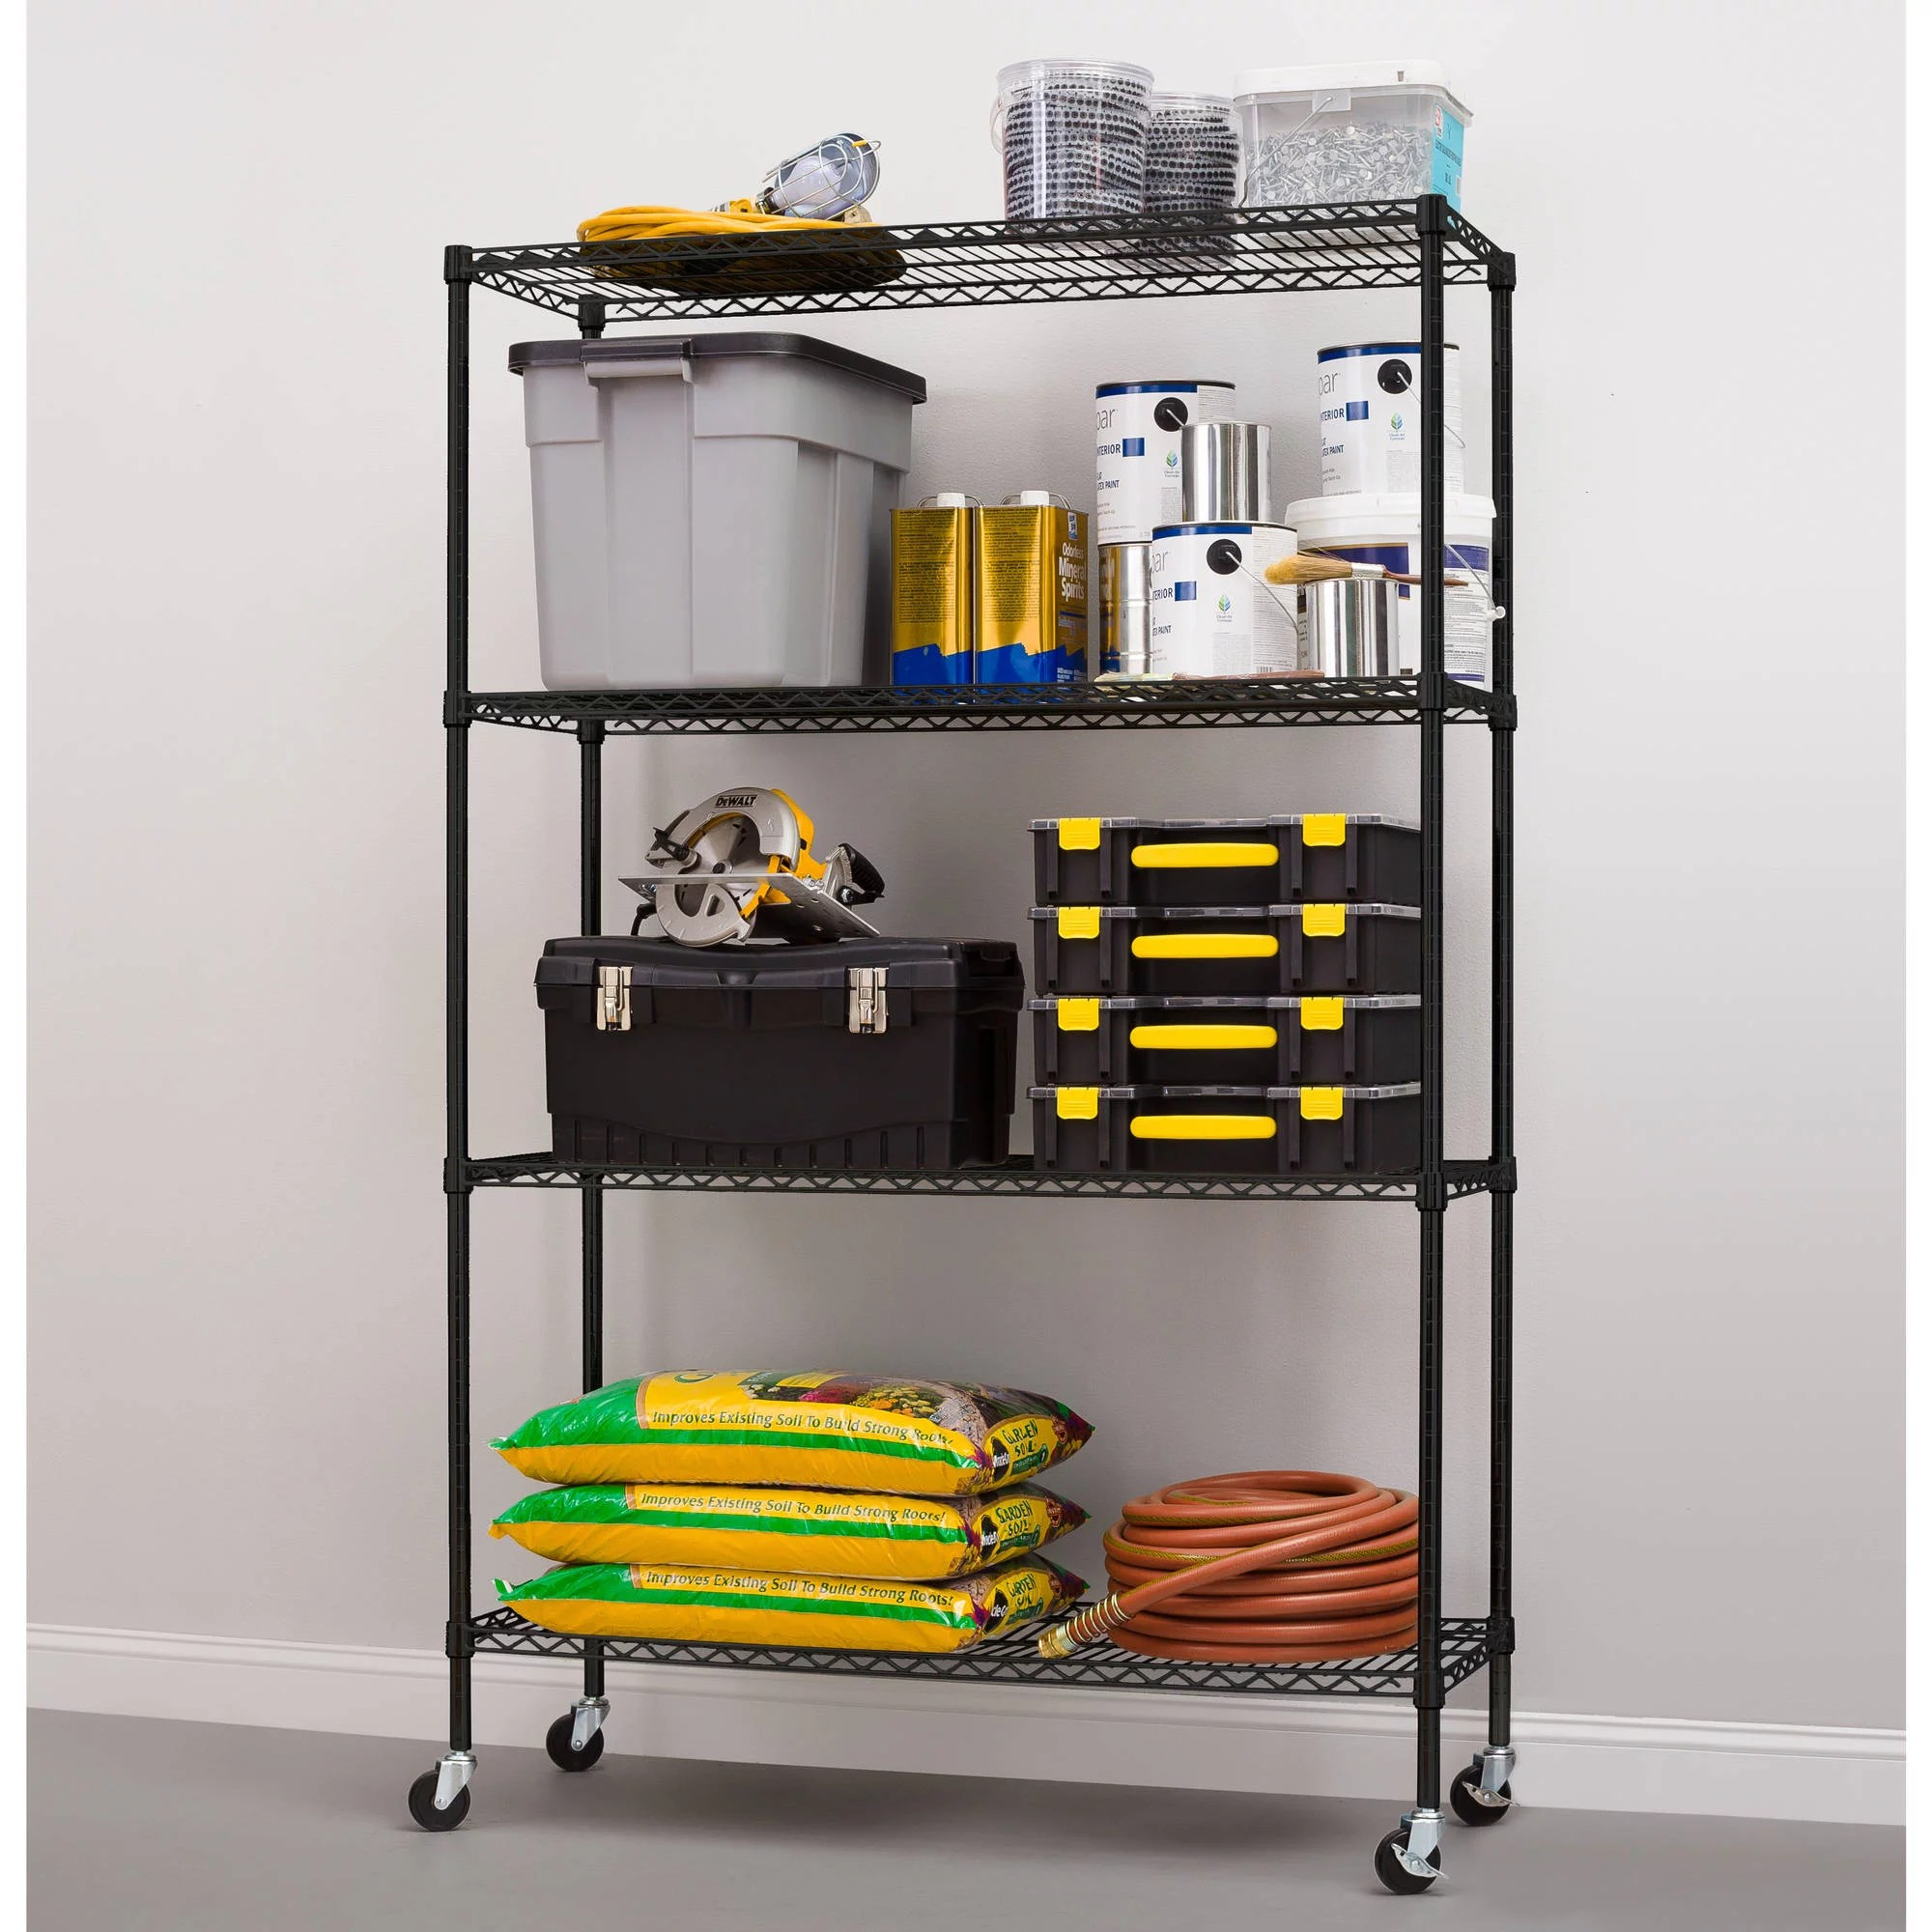 hight resolution of hyper tough 4 shelf commercial grade wire shelving system with bonus shelf liners and casters black walmart com